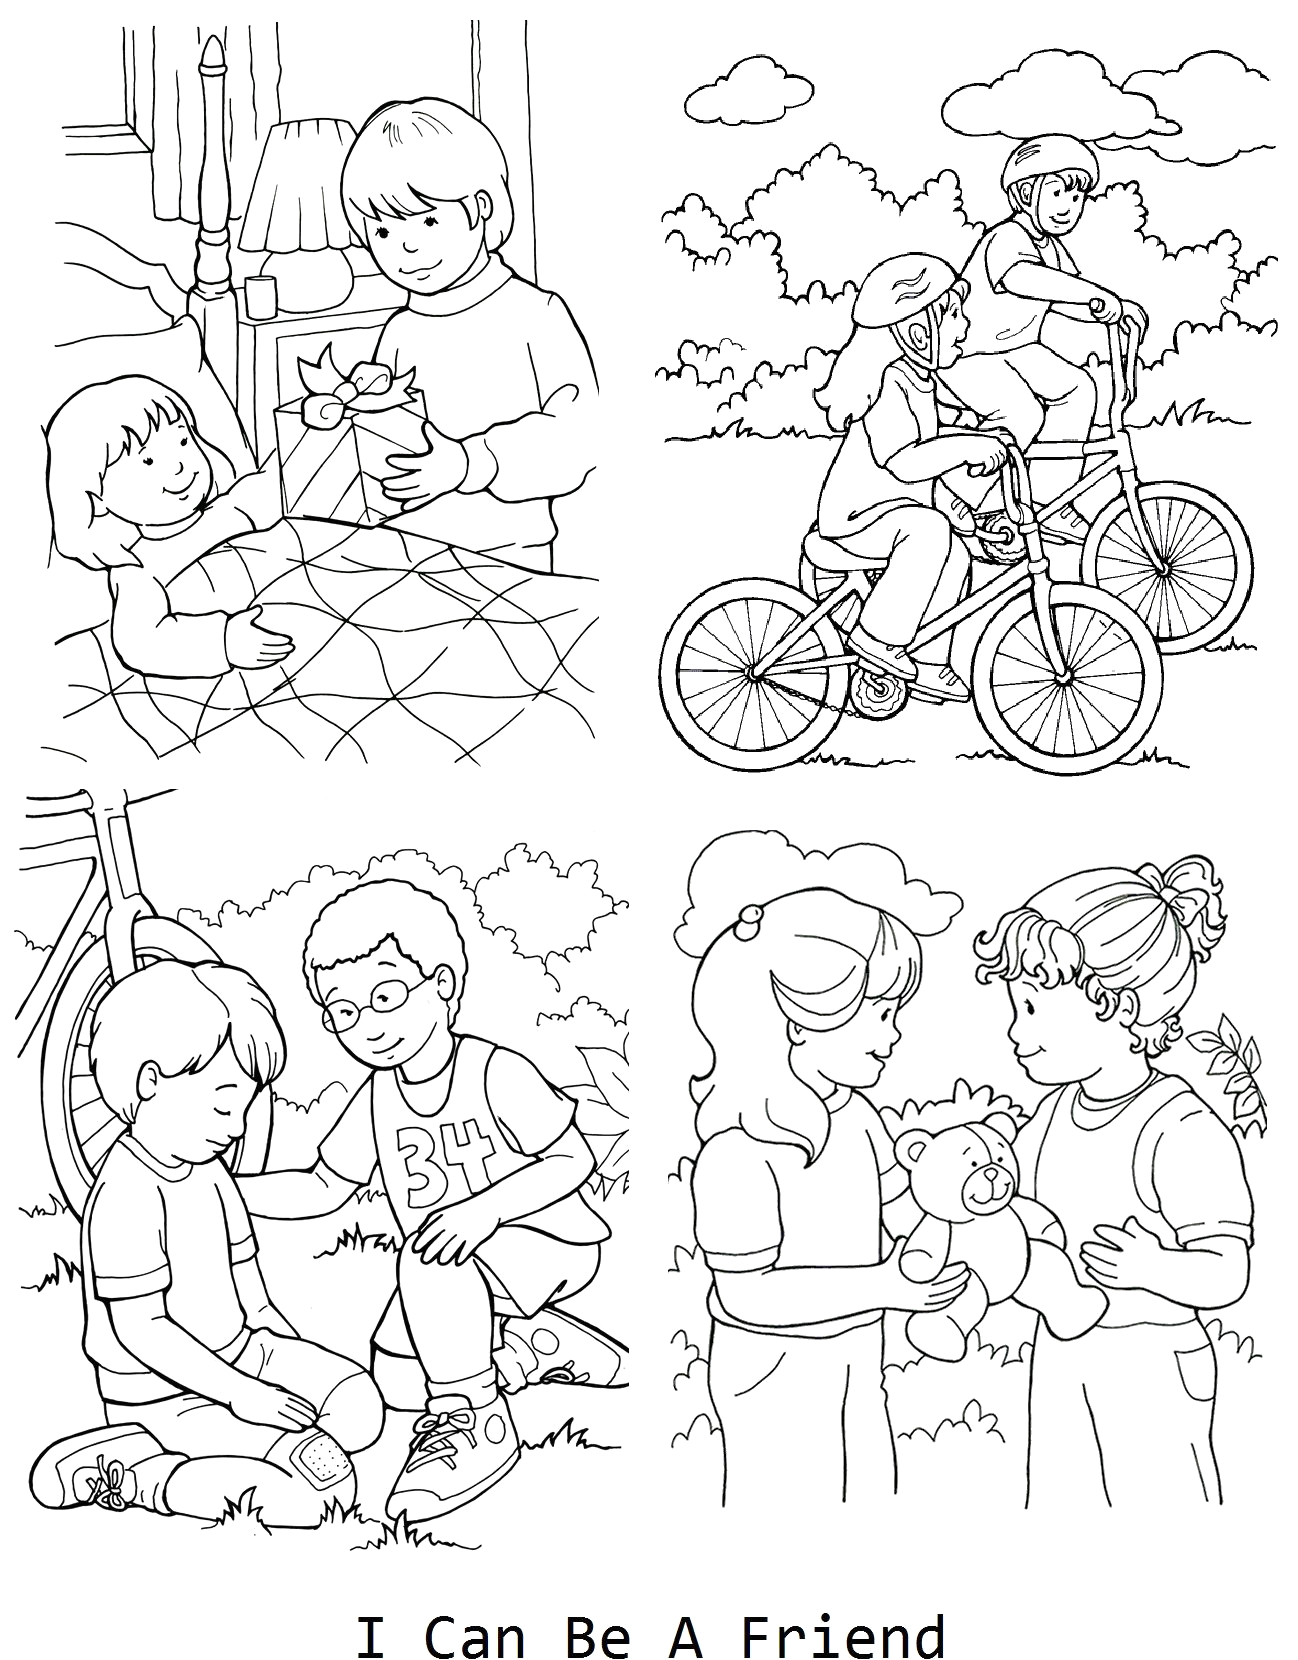 I Can Be A Friend Coloring Page I Can Be A Friend Coloring Page for Lesson 33